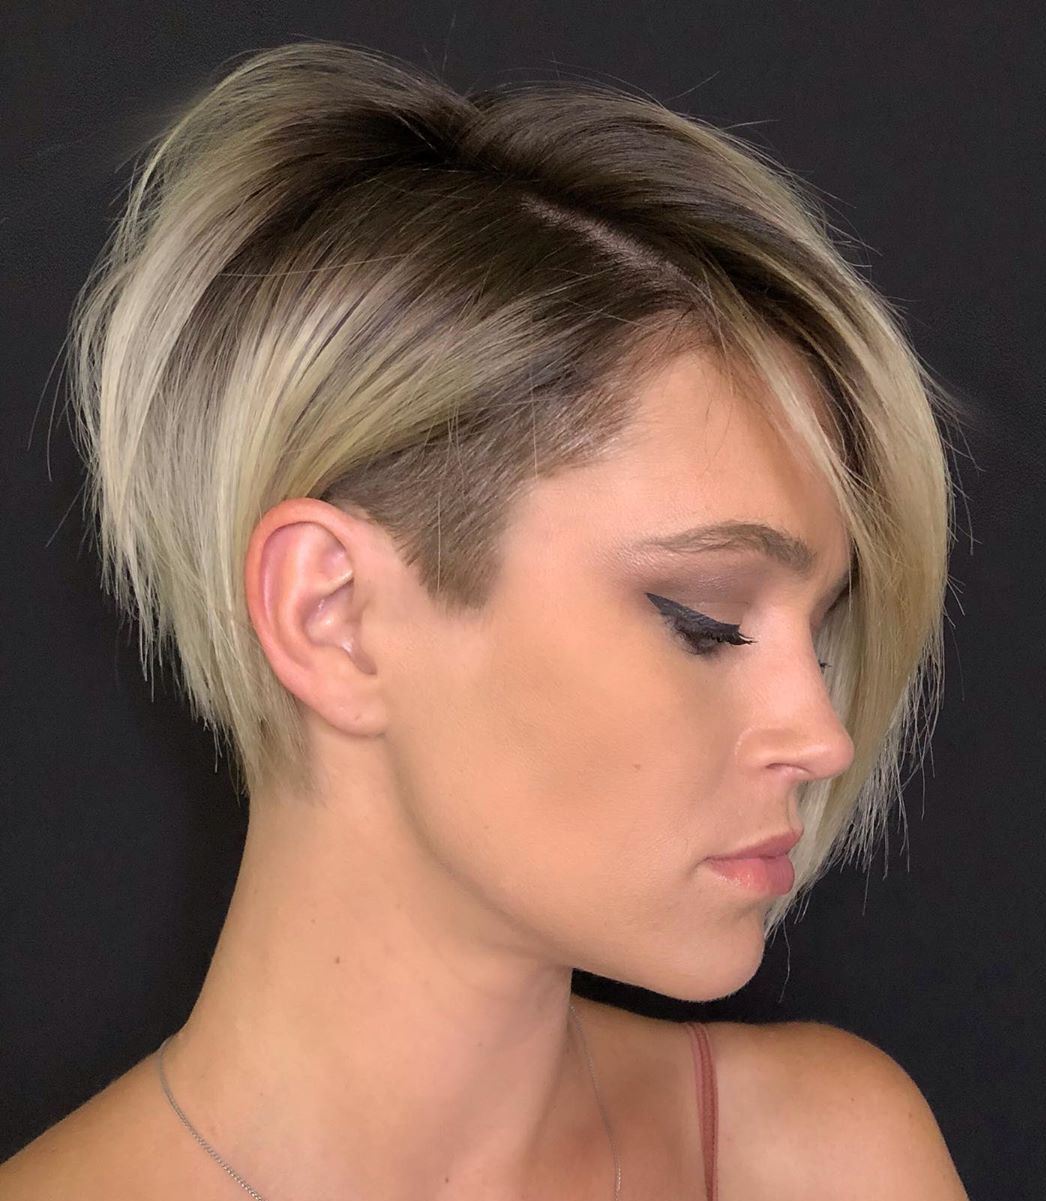 50 Badass Undercut Bob Ideas You CAN'T Say No To -